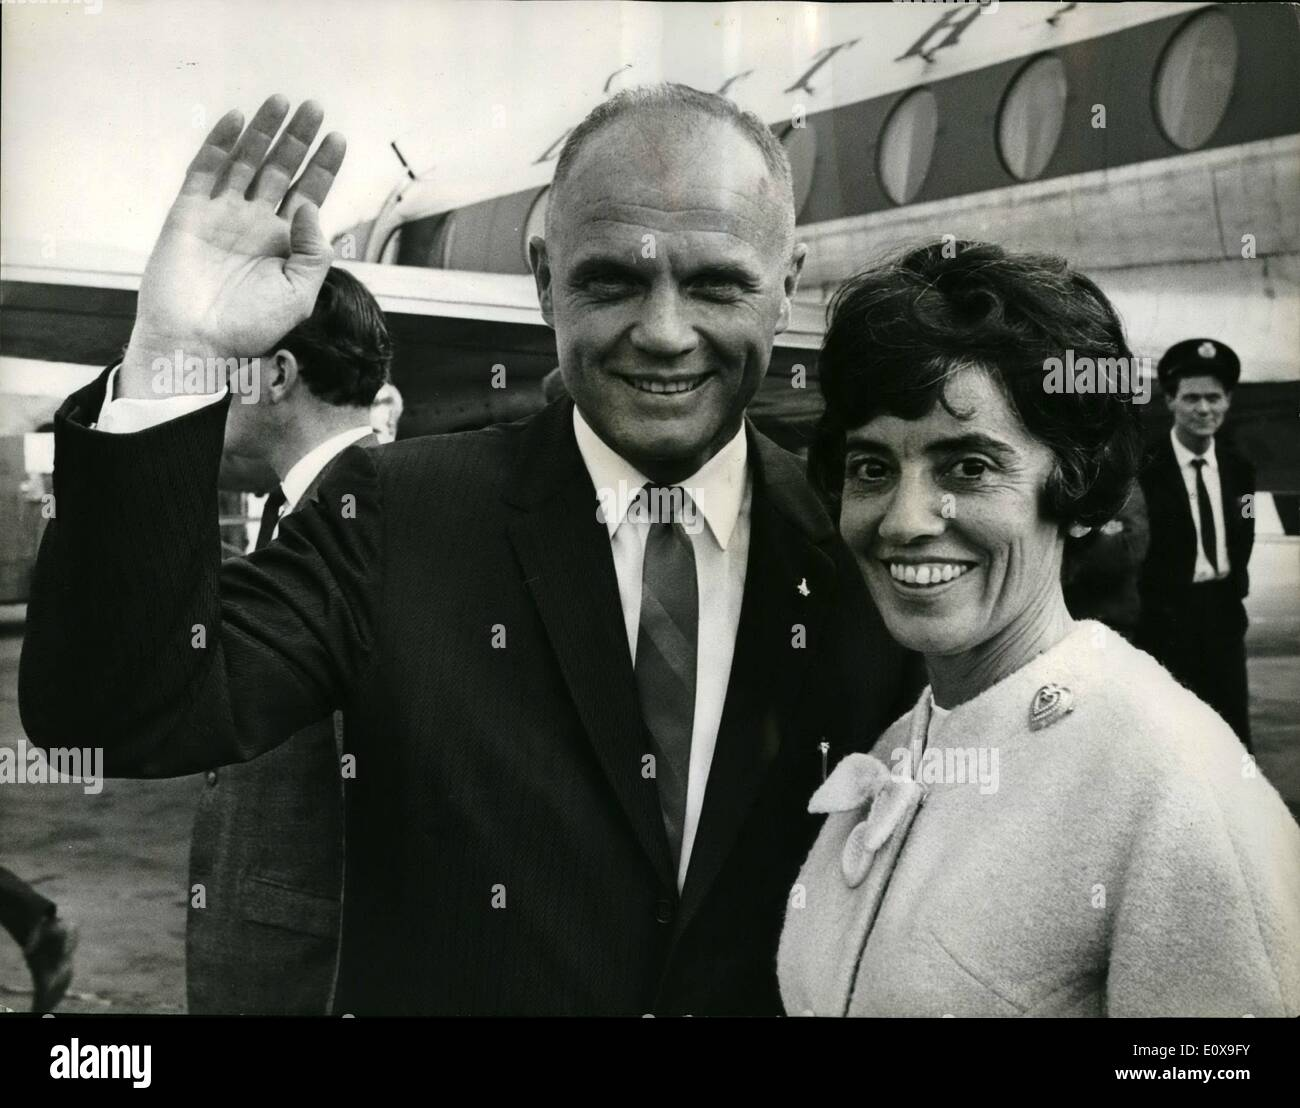 Oct. 10, 1965 - The spaceman who went by plans and arrived late : Astronaut John Glenn and his wife flew into Britain yesterday. But not without some difficulty. Their journey from Hamburg, in Germany, took them nearly 10 hours, which was five hours longer than it took colonel Glenn to fly three times around the earth in his space capsule in 1962. The Glenn's were aboard a viscount airliner which was unable to lend at London airport because fog had caused a pile-up of planes waiting to land. The plane returned to hamburg and took off again for London several hours later. This time i landed - Stock Image